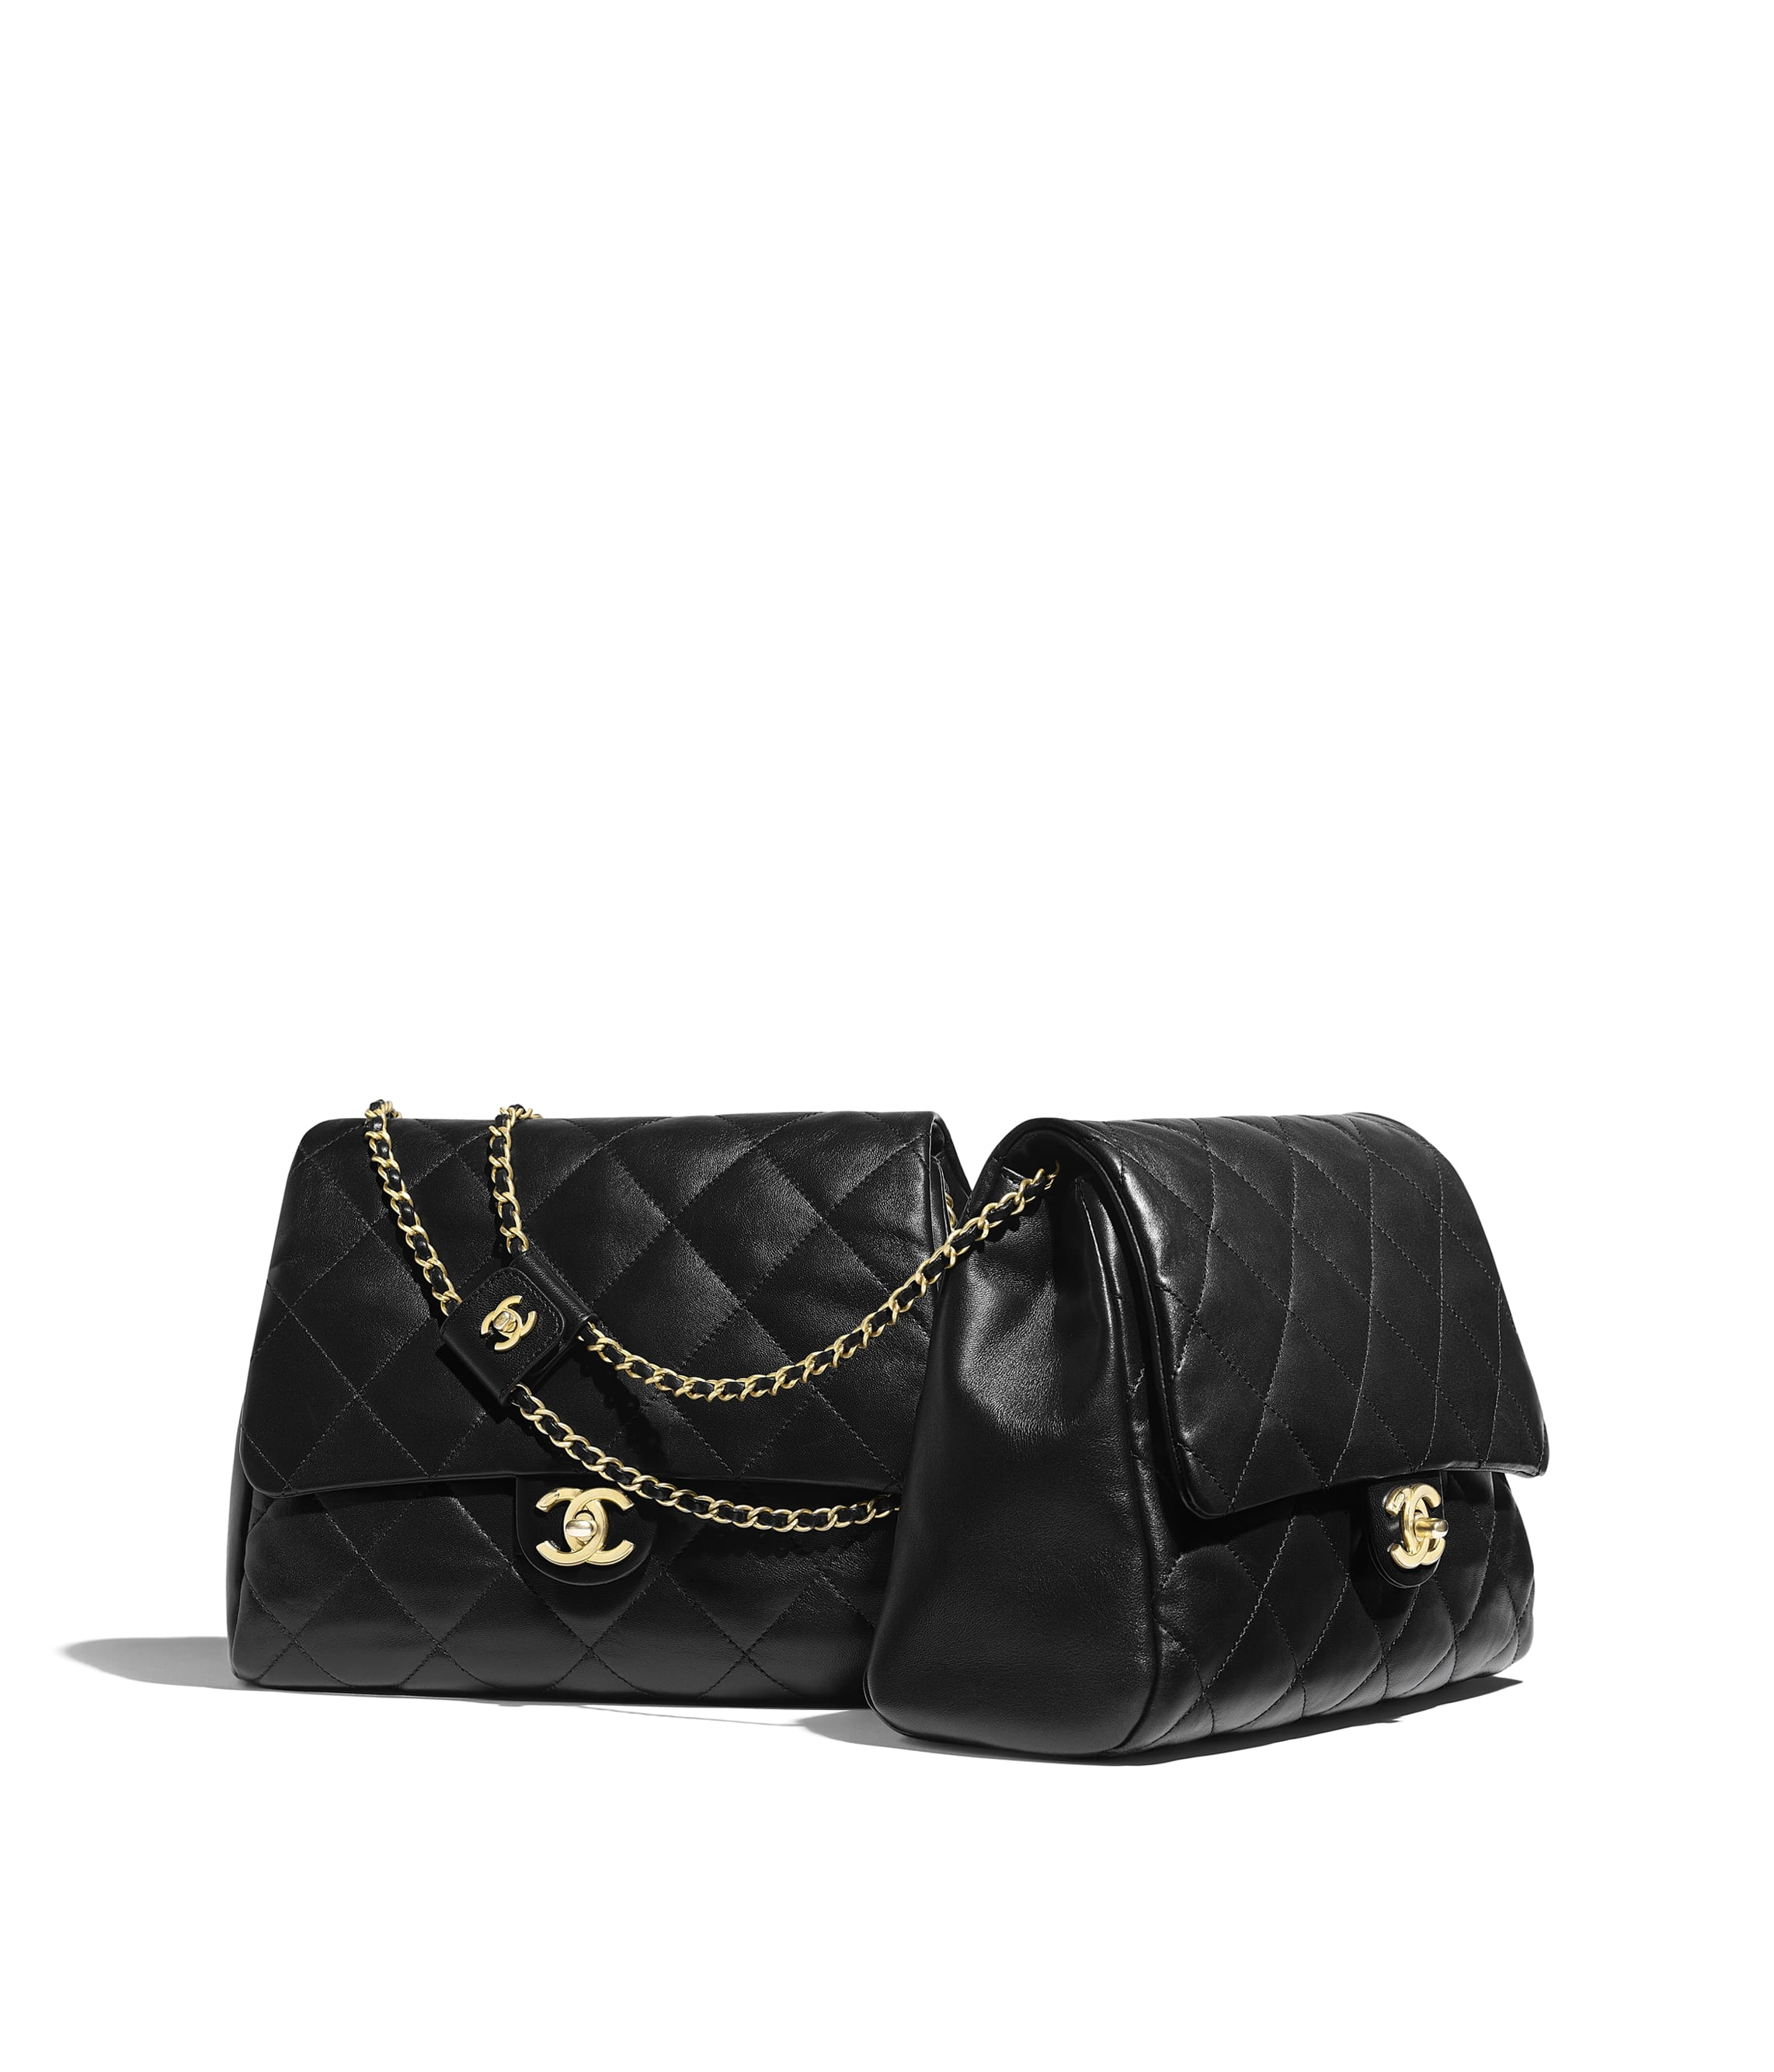 ca3f3a8848b8 Handbags - CHANEL